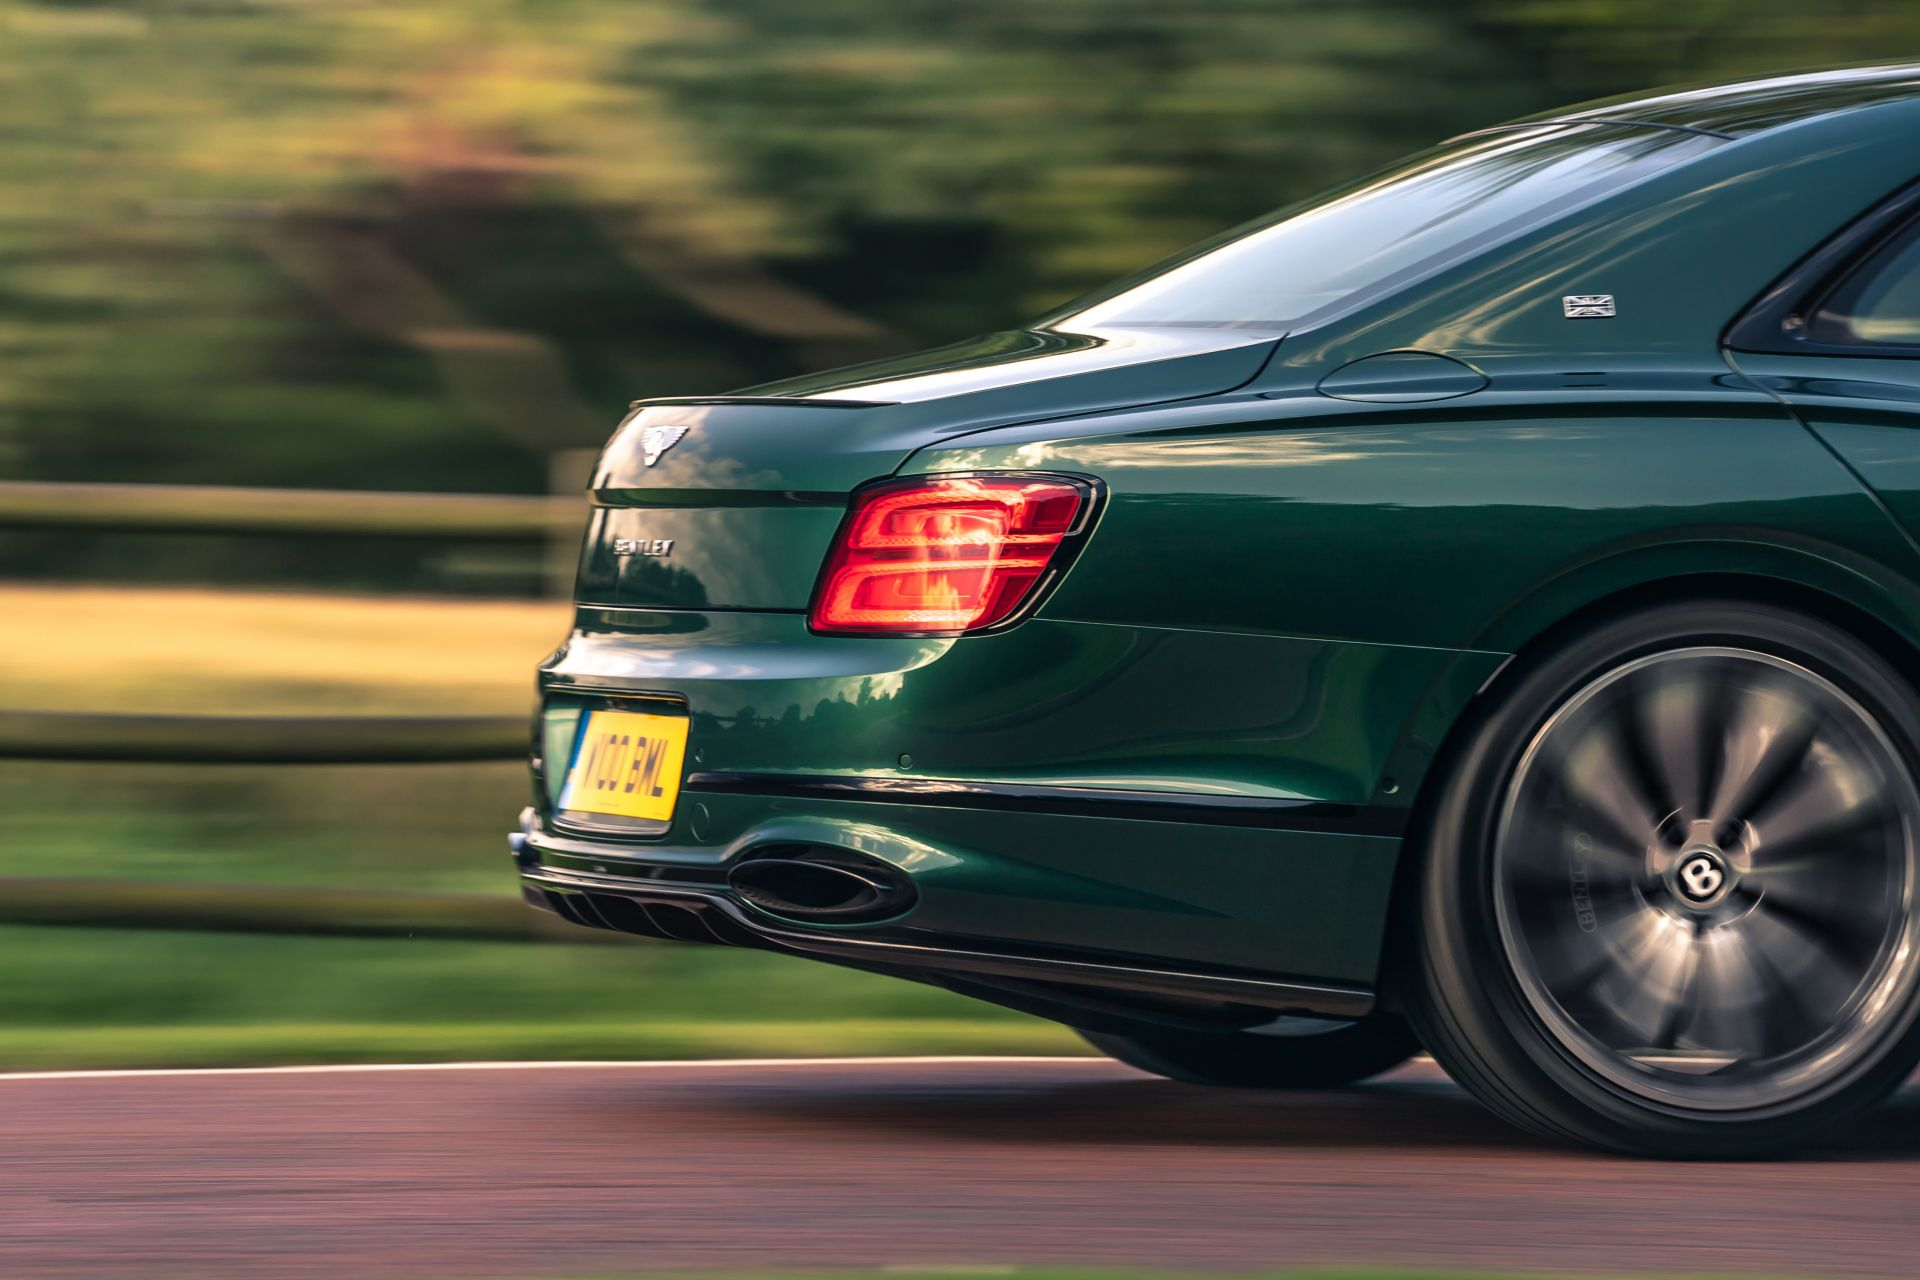 Bentley-Flying-Spur-Styling-Specification-5